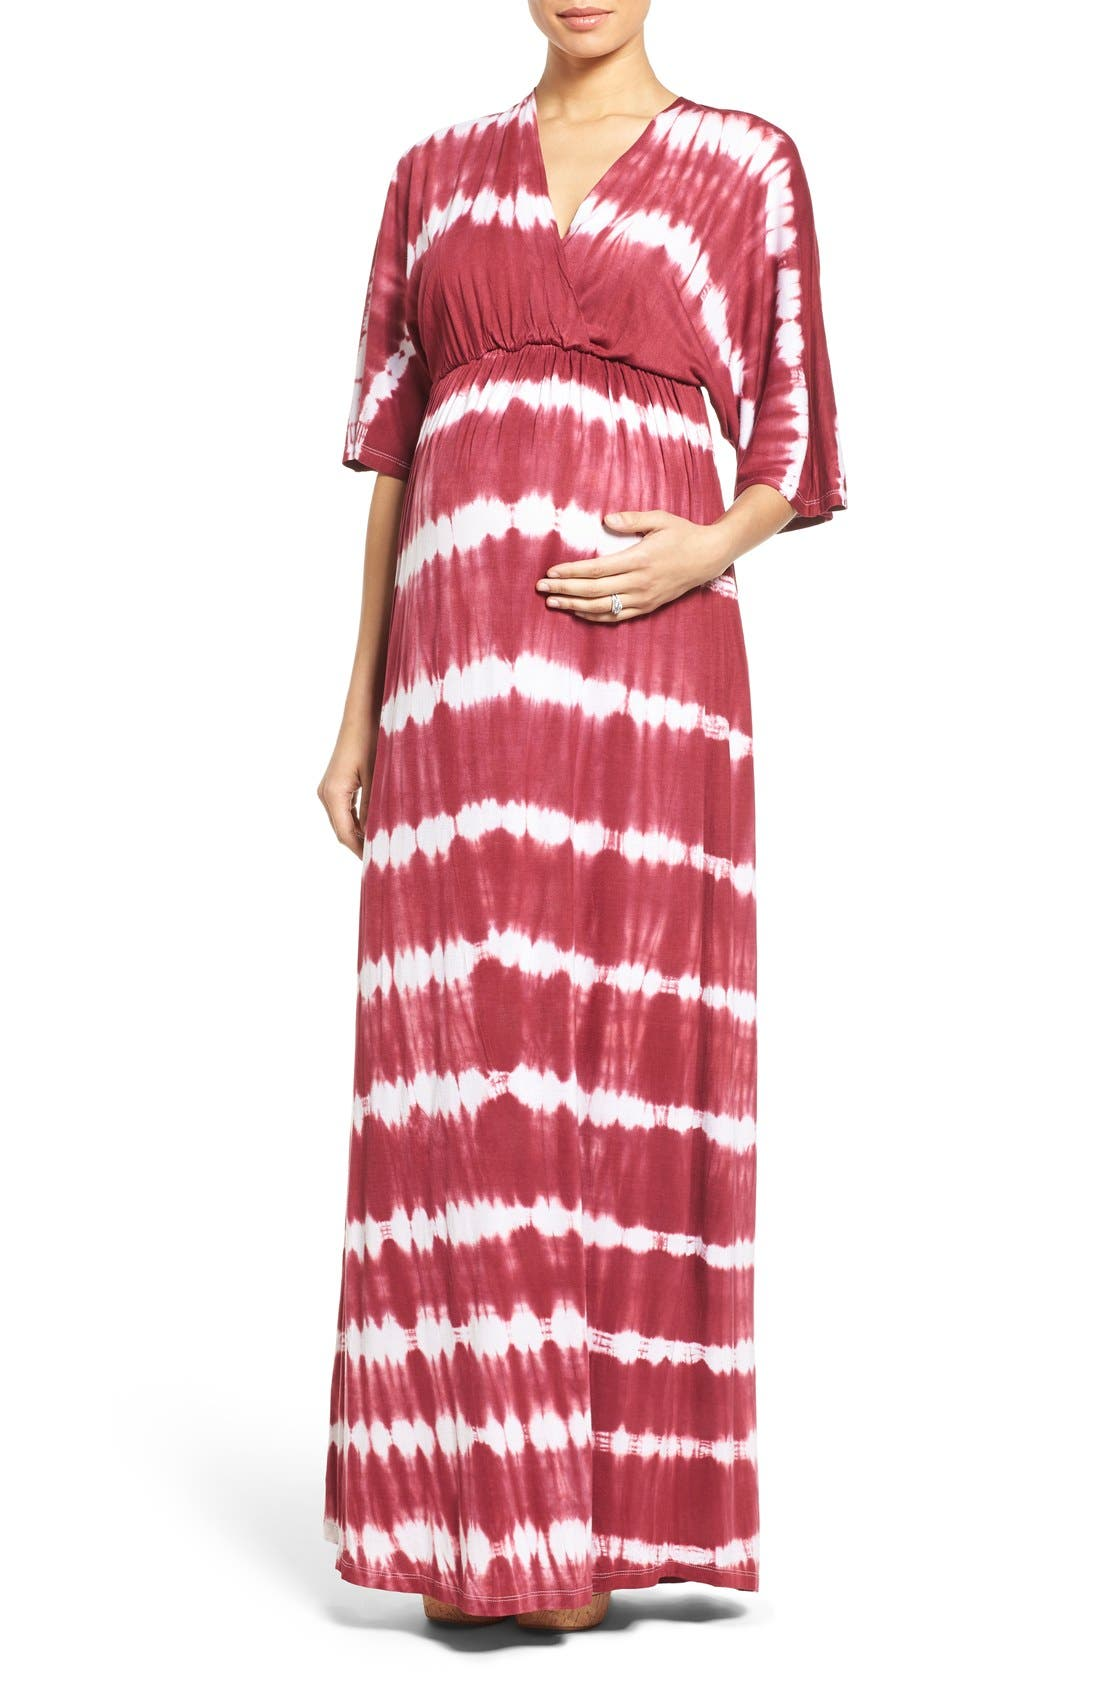 FILLYBOO 'Dream Shakey' Tie Dye Maternity Maxi Dress